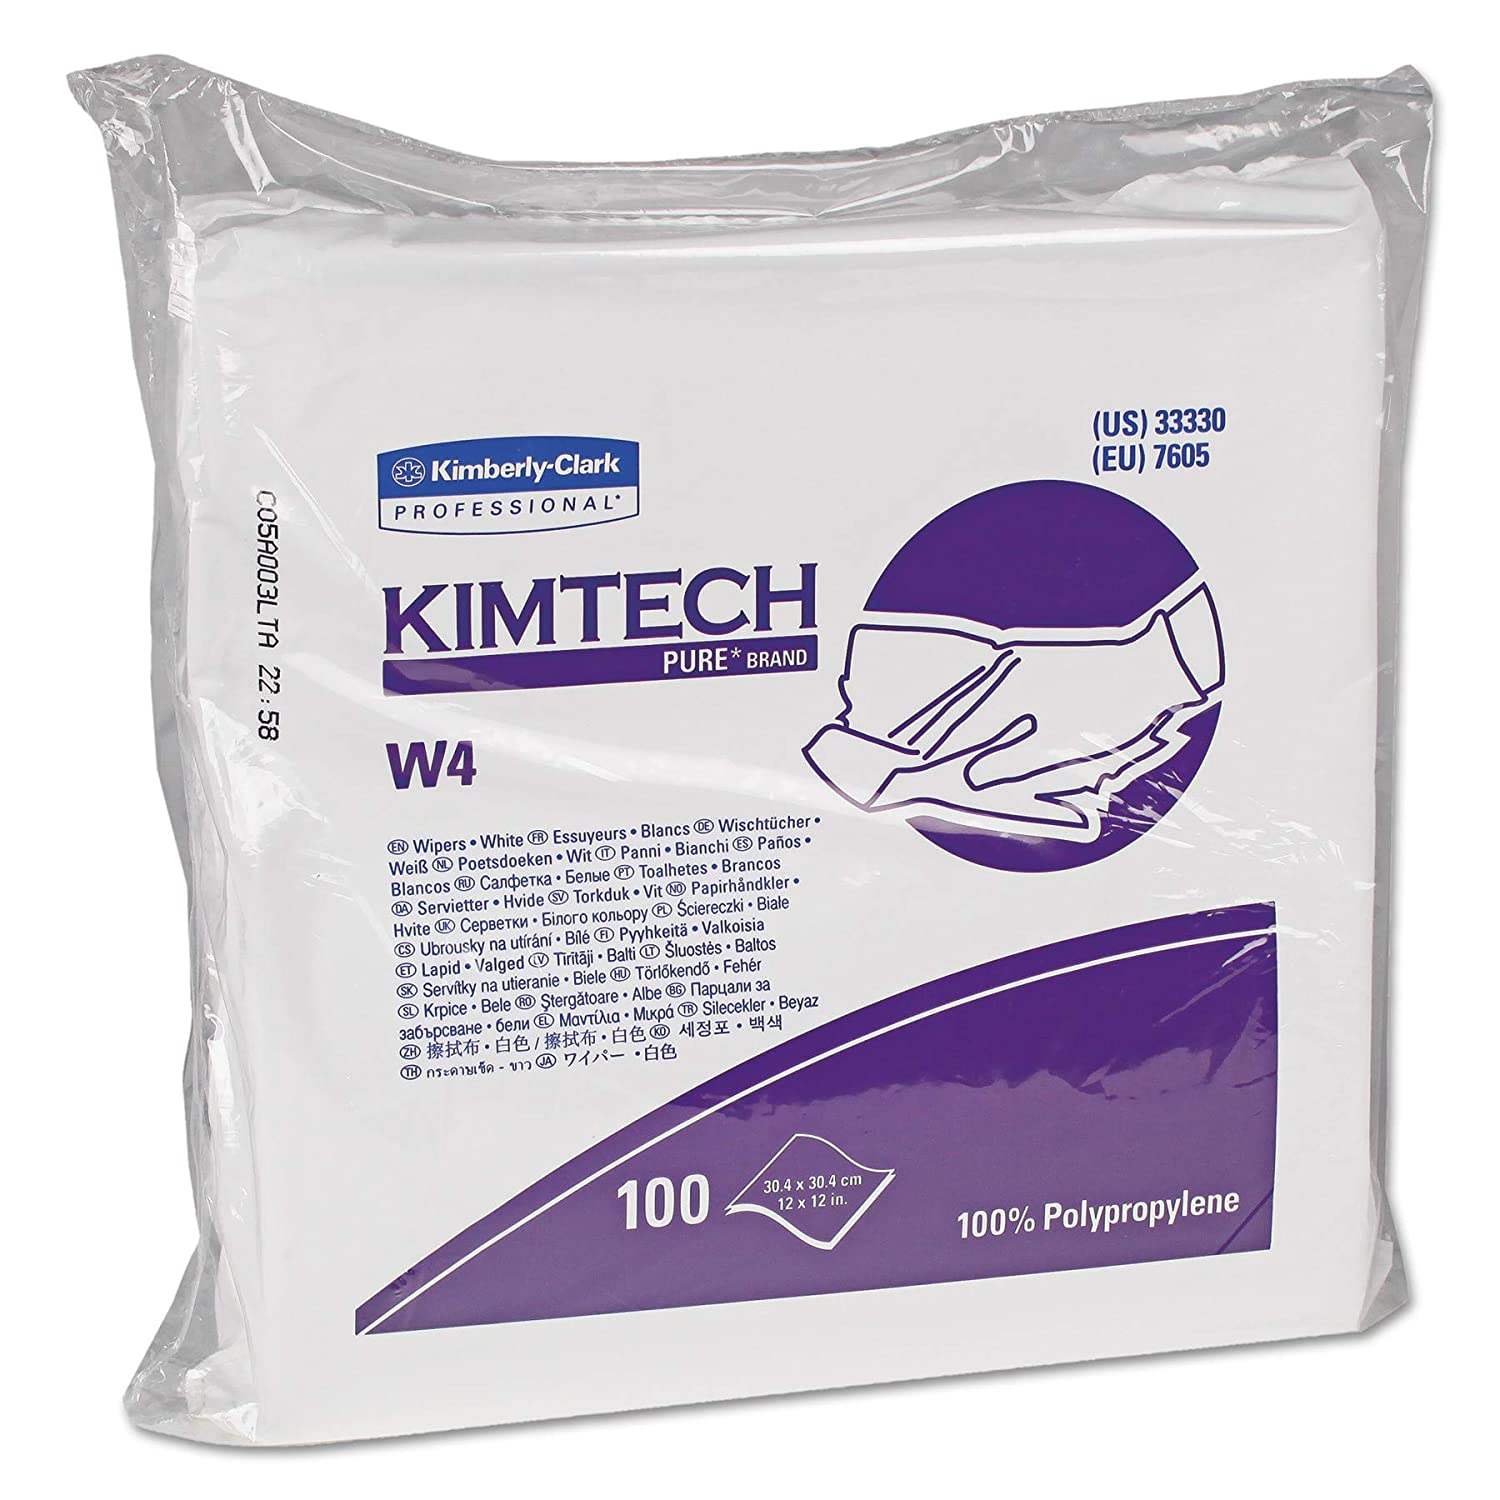 Kimtech 33330 W4 Critical Task Wipers Flat Double Bag 12x12 White 100 per Pack Case of 5 Packs